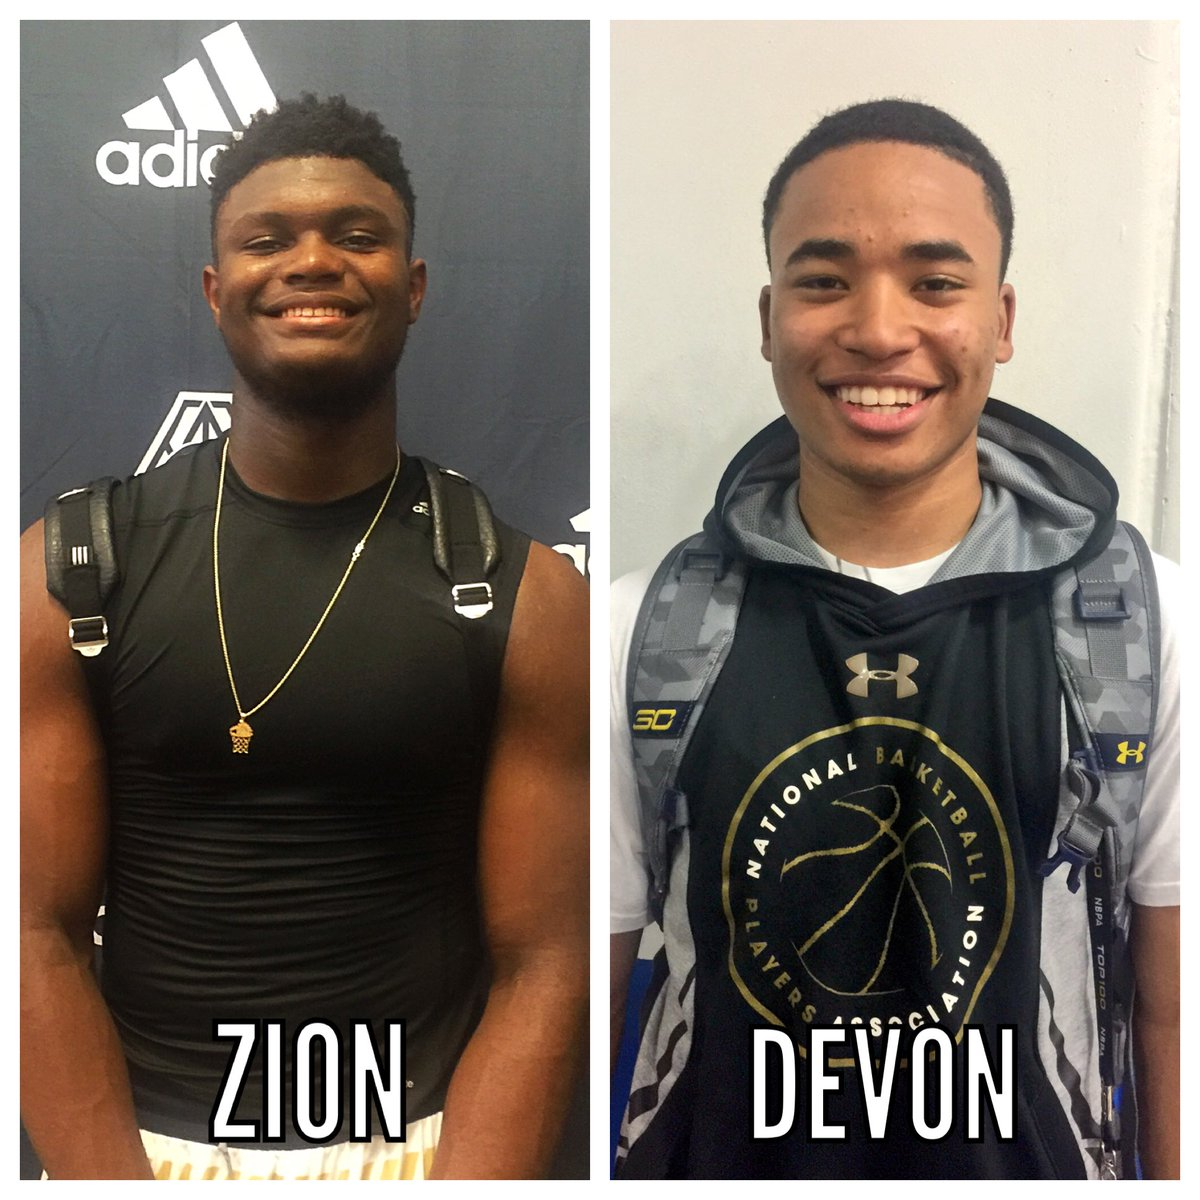 Andrew Slater On Twitter Top Ranked Zion Williamson Zionw32 5 Pg Devon Dotson D Dotson1 Are Expected To Join Forces For Sc Supreme In Vegas Dynamicduo Https T Co Q9ukbonj4x